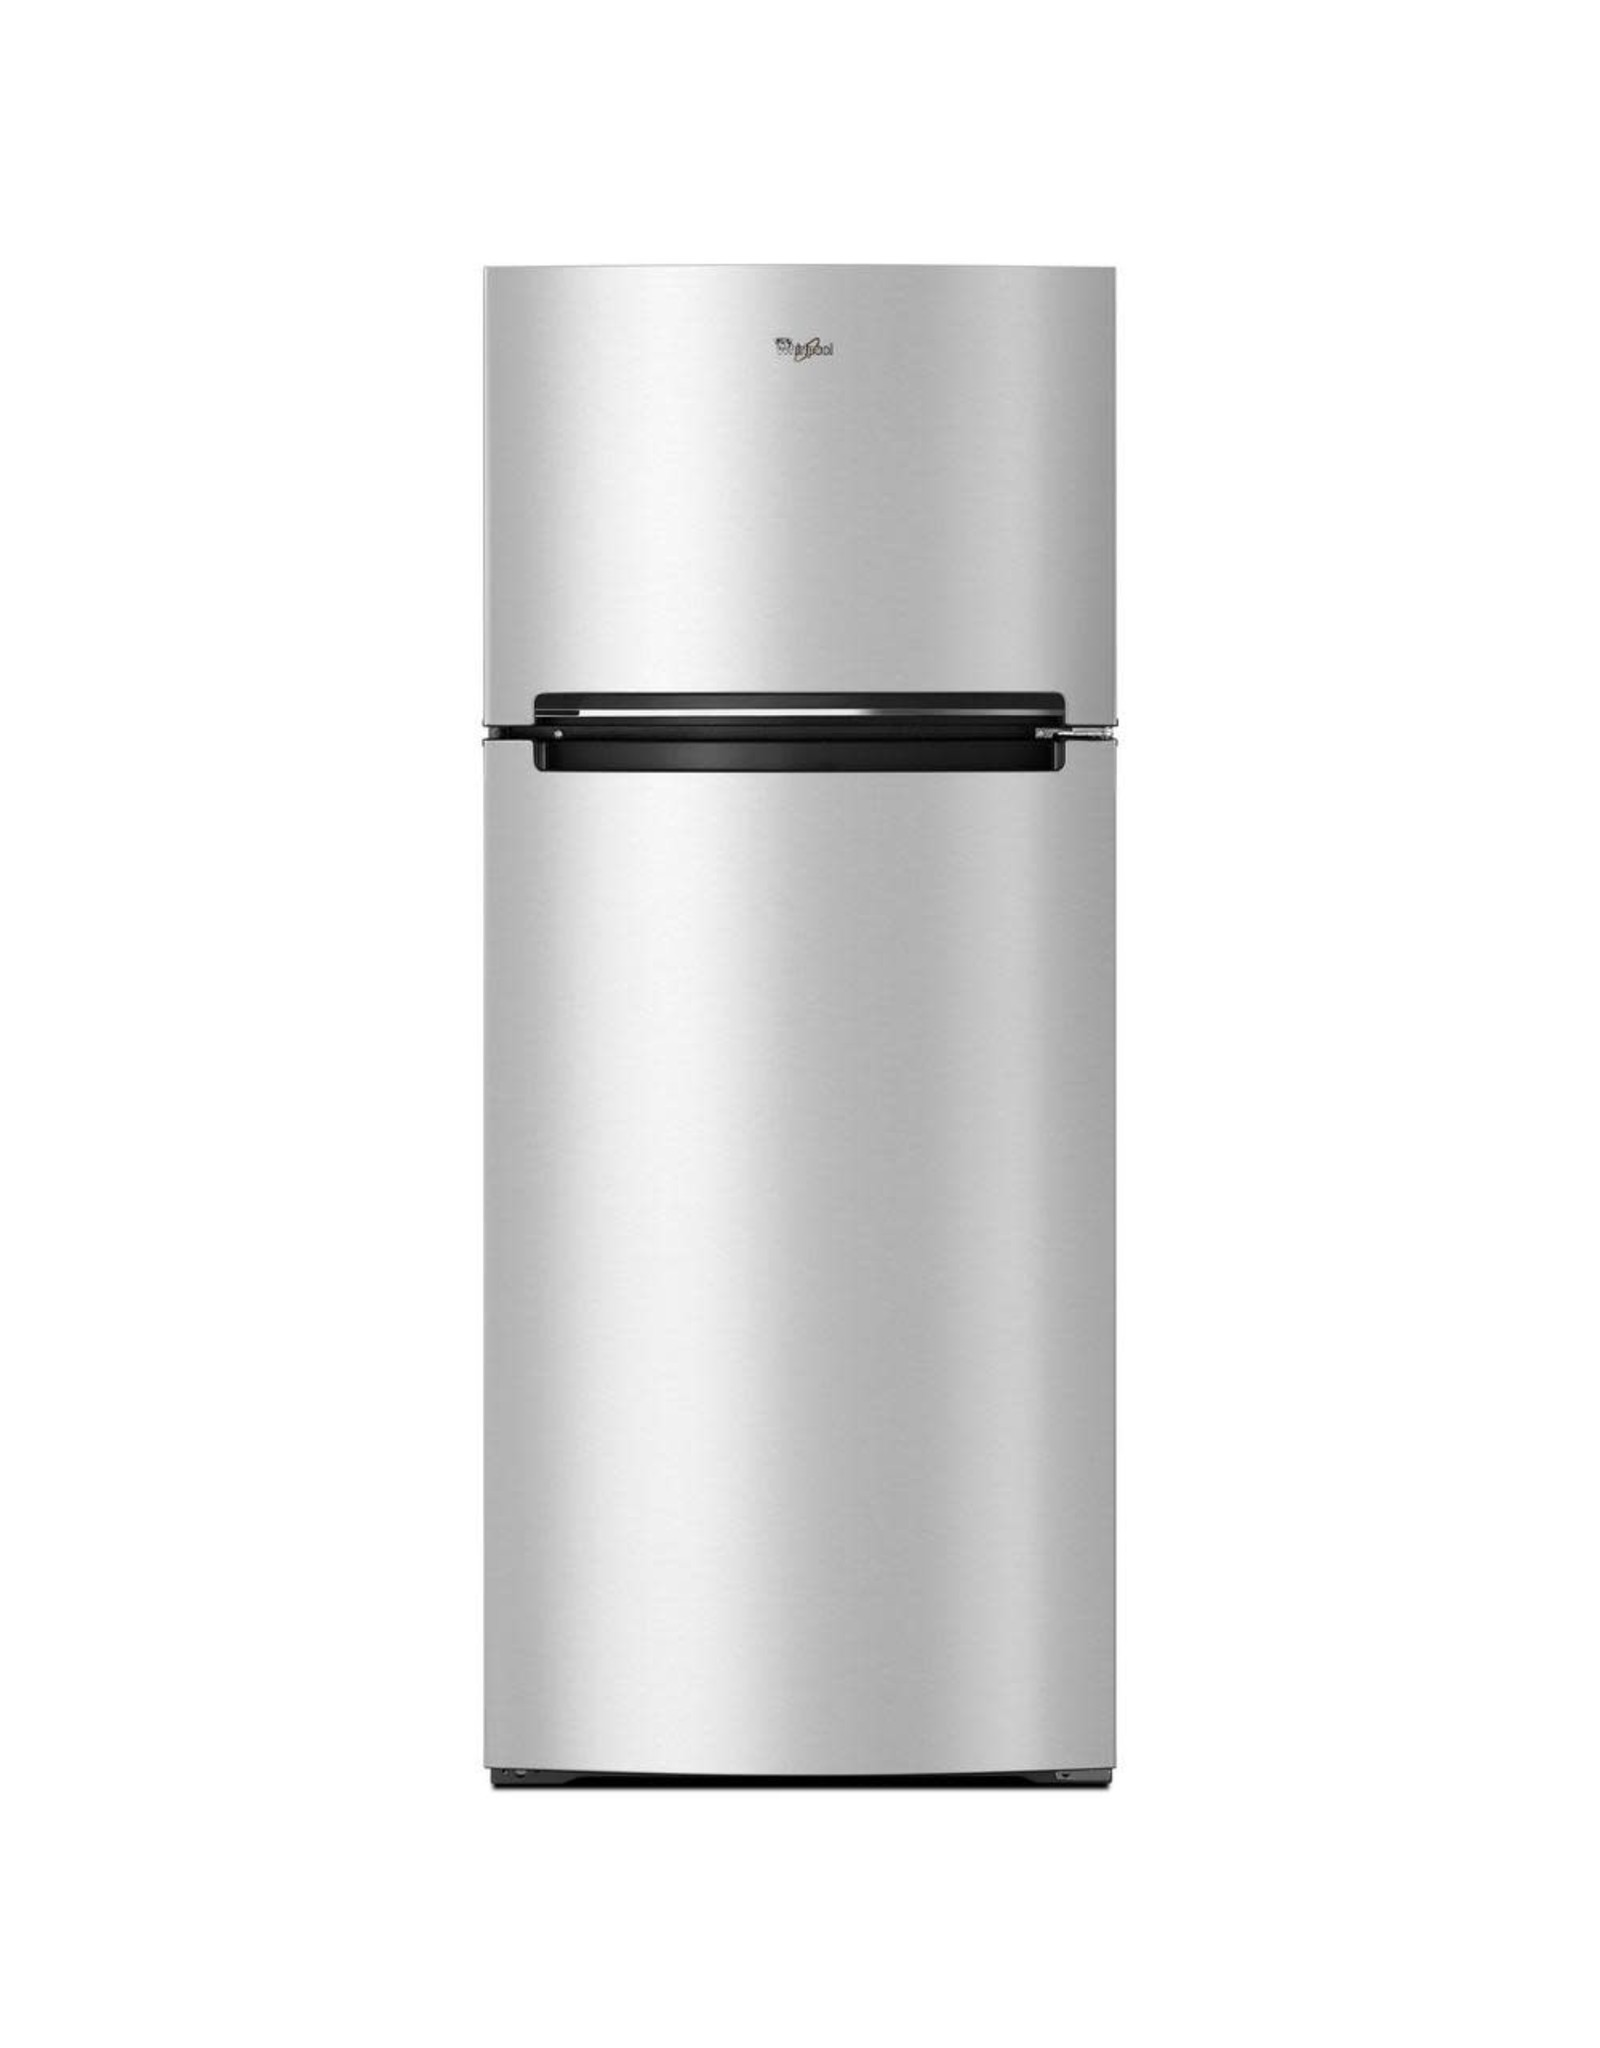 WHIRLPOOL WRT518SZFM WHR No Frost Top - Free Standing Refr Frez - 18 CU FT; STD ENERGY/GLASS RC; CONTOUR D